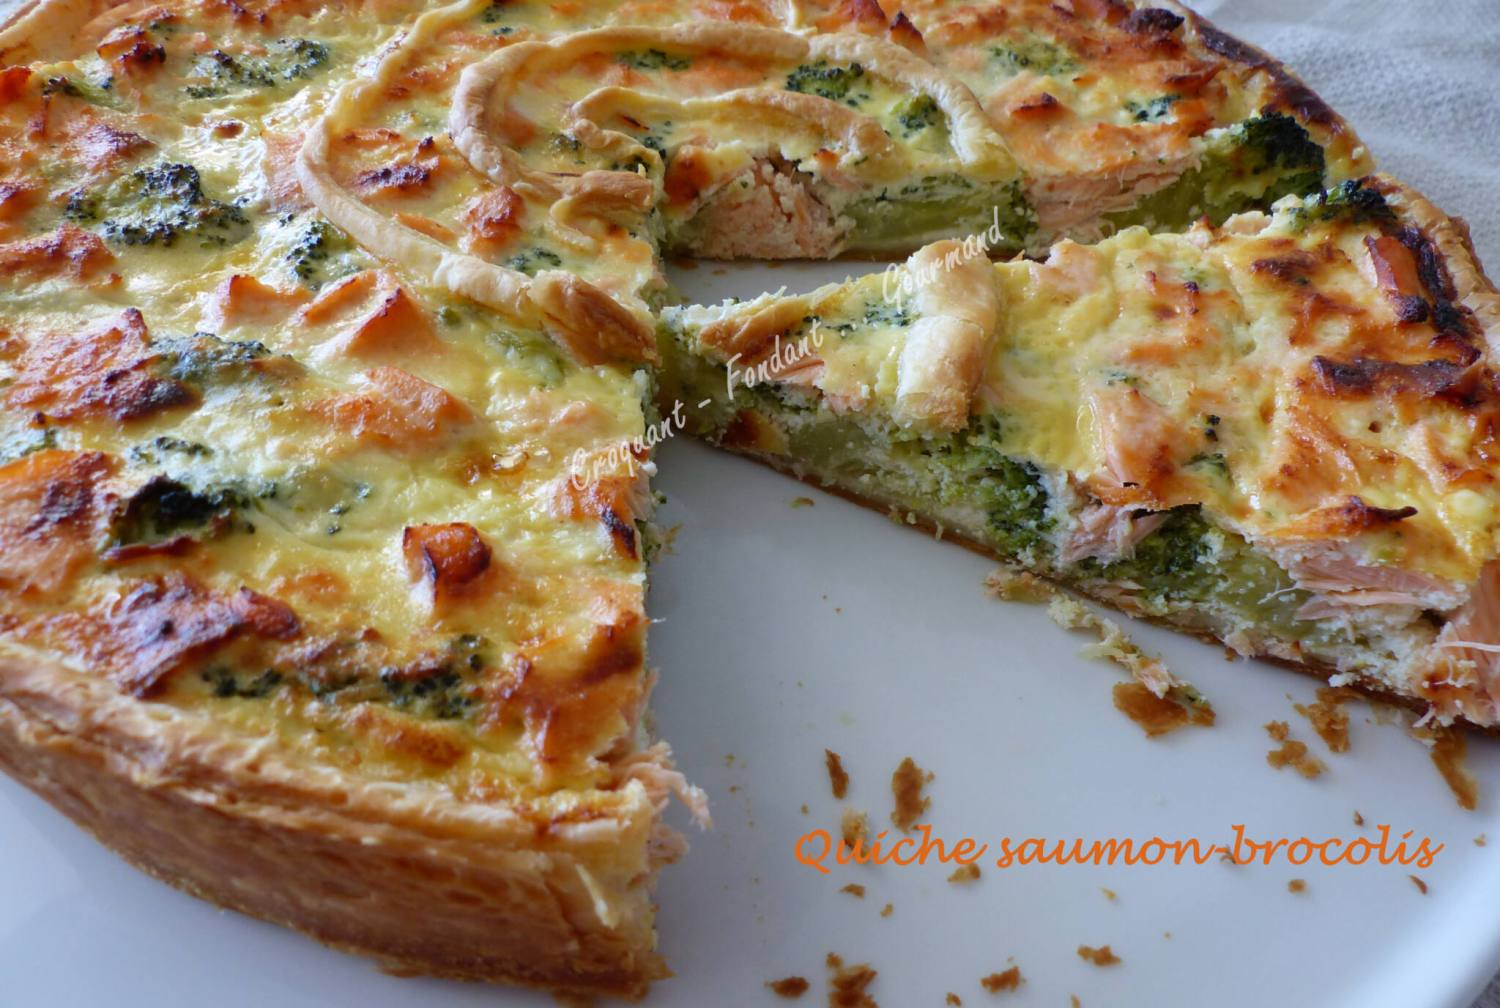 Quiche saumon-brocolis P1010587